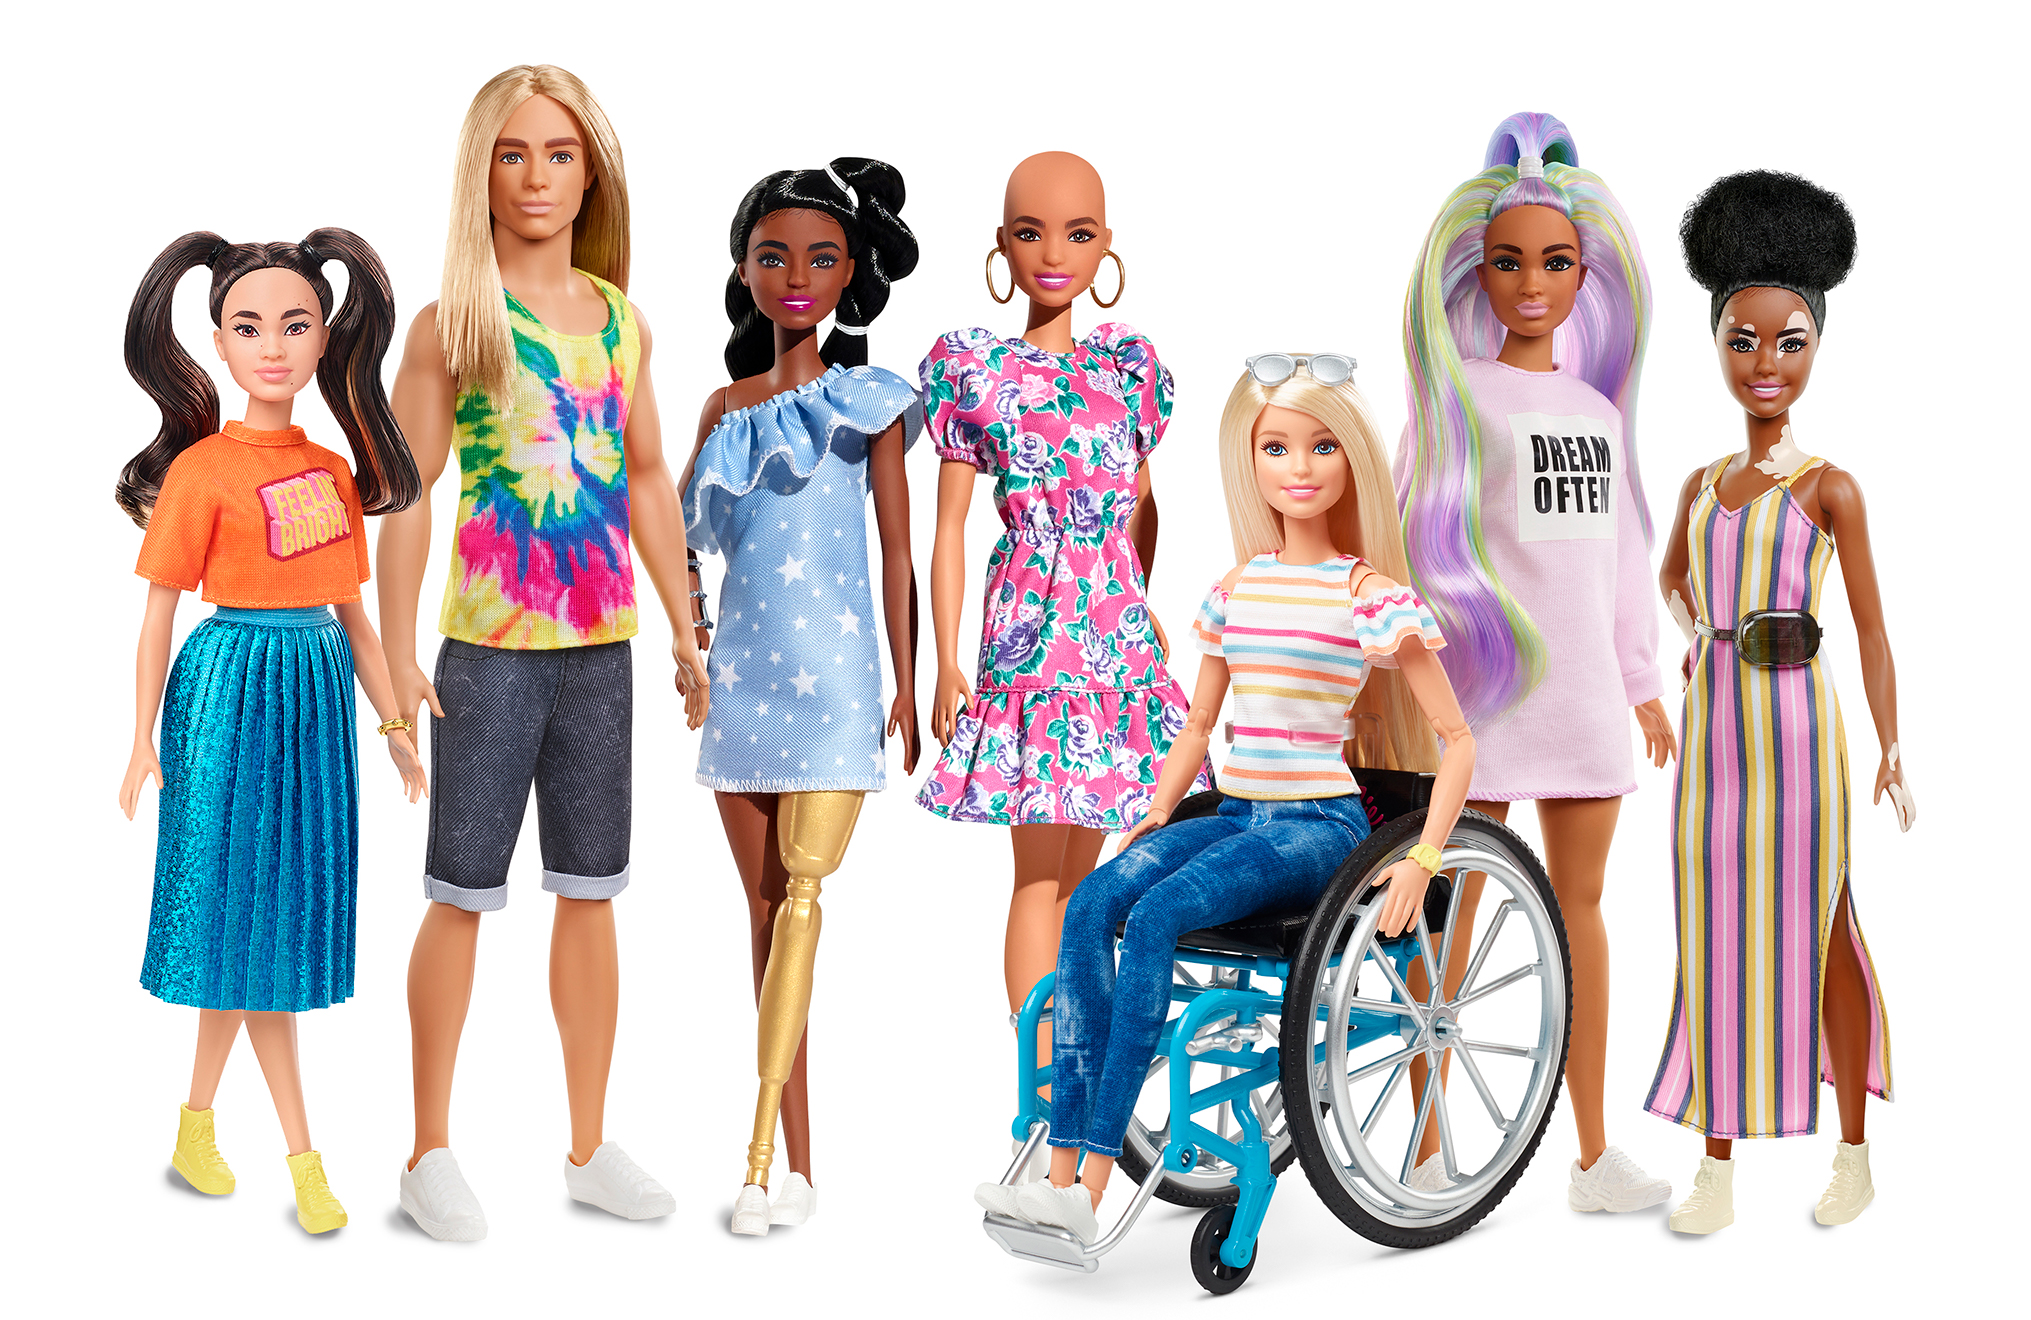 Mattel Releases New Barbie Dolls with Vitiligo, Alopecia image